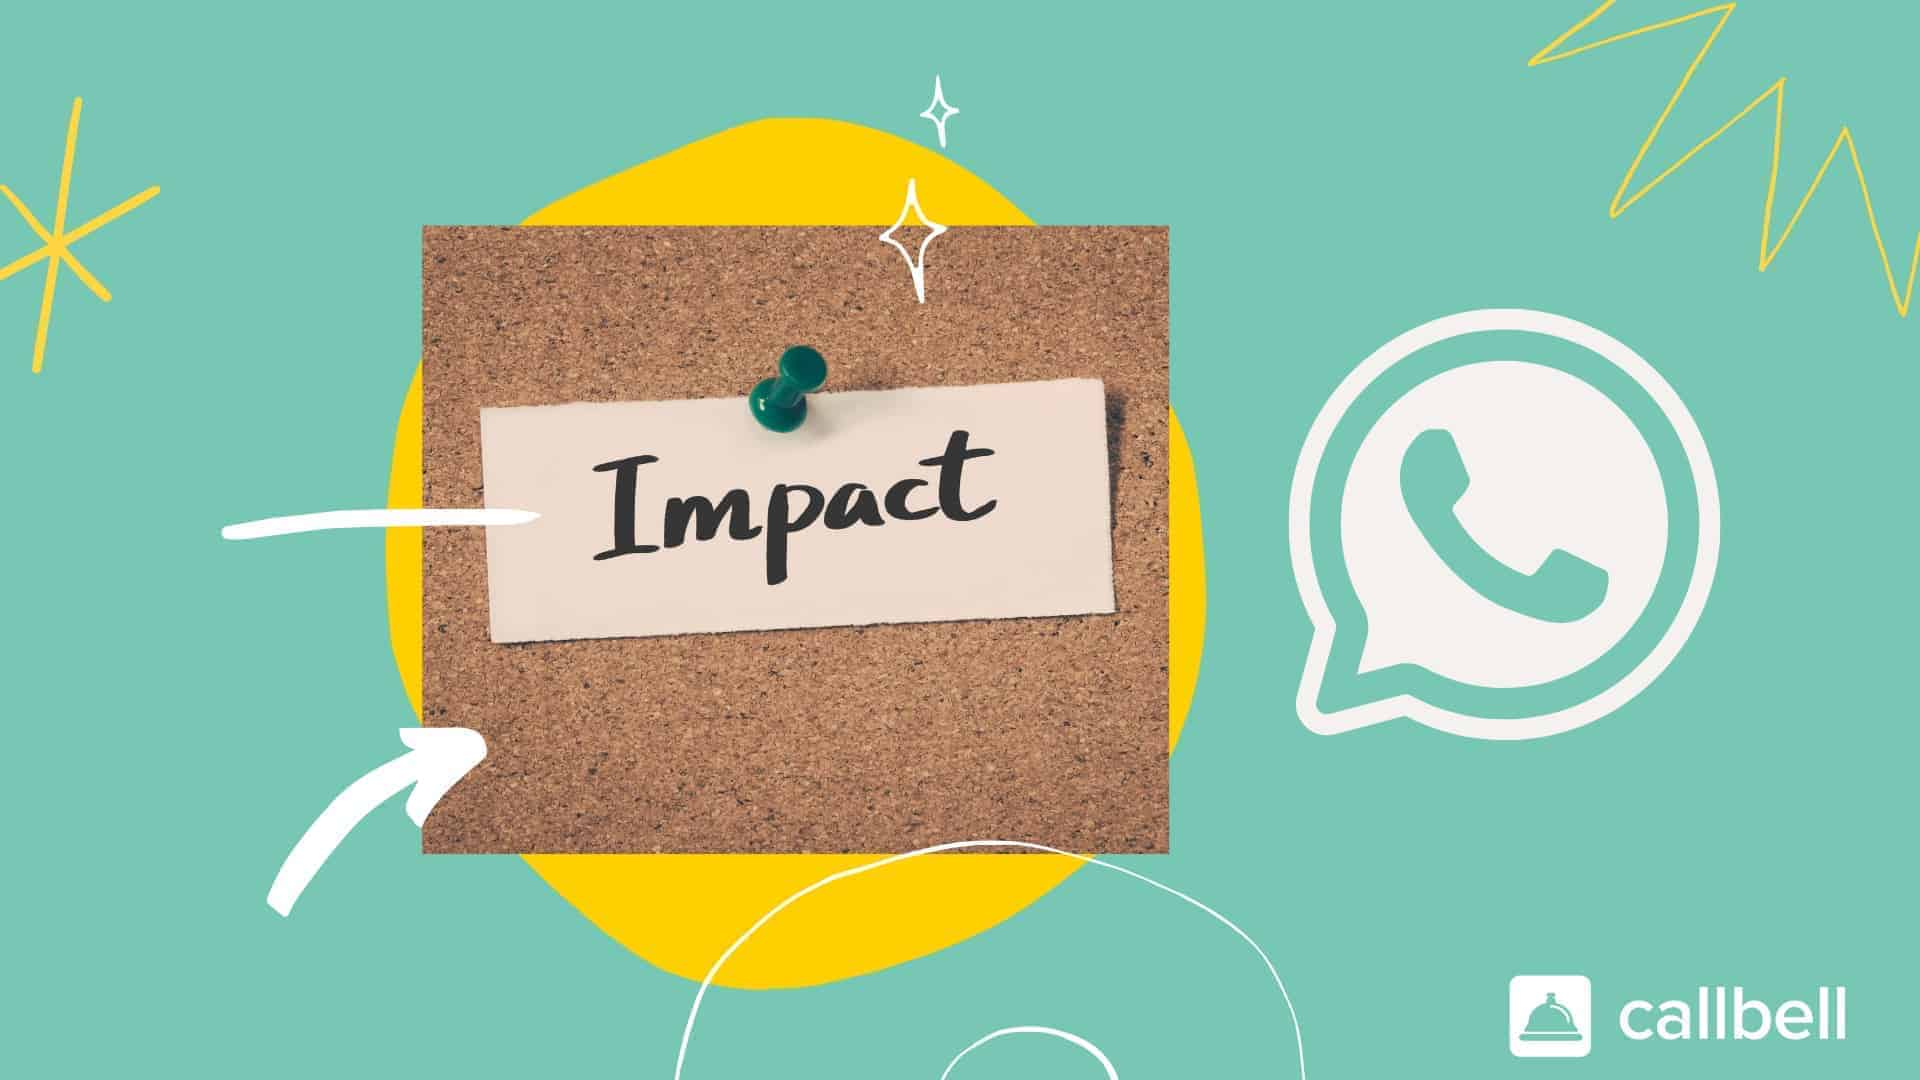 What impact WhatsApp has had for business